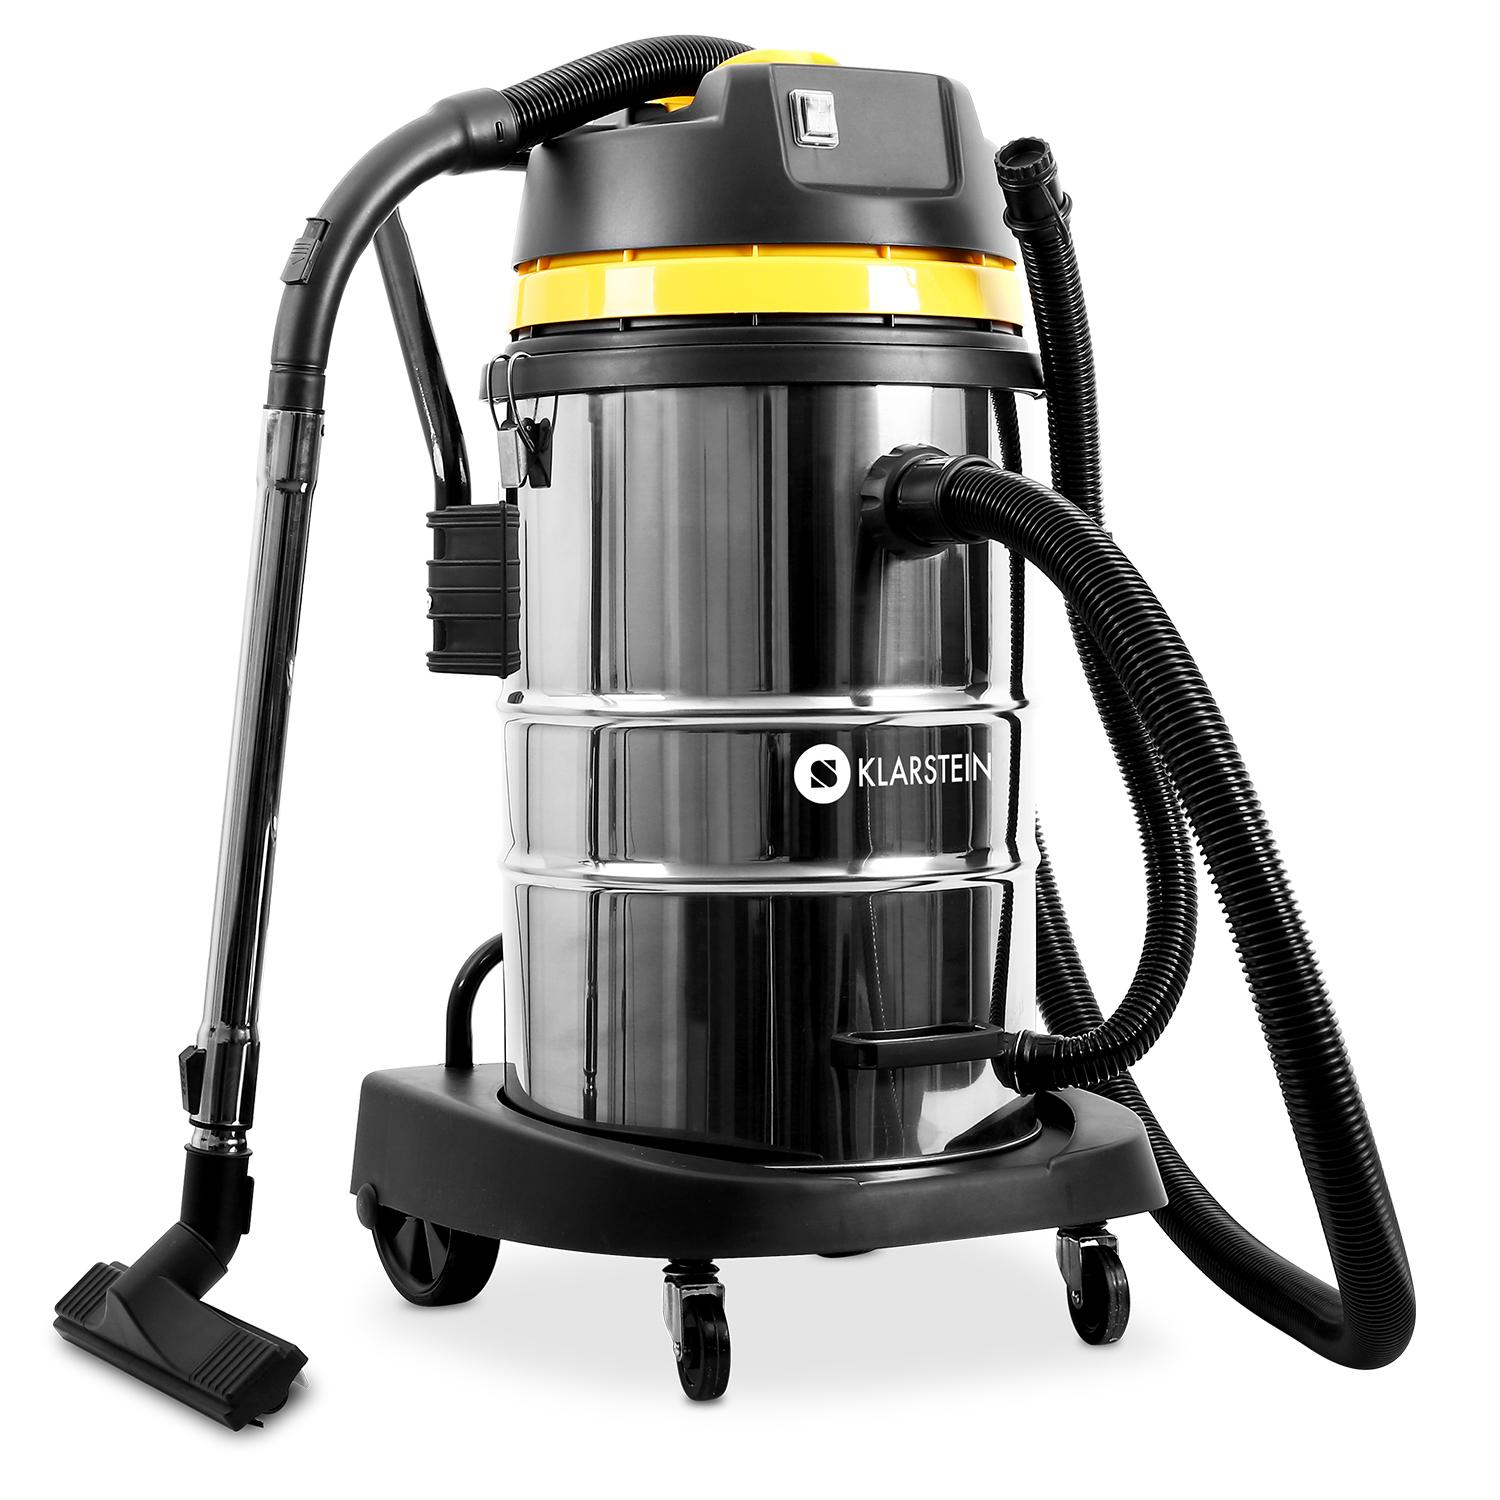 new industrial vacuum cleaners 30 l 50 l 80 l shop vac. Black Bedroom Furniture Sets. Home Design Ideas